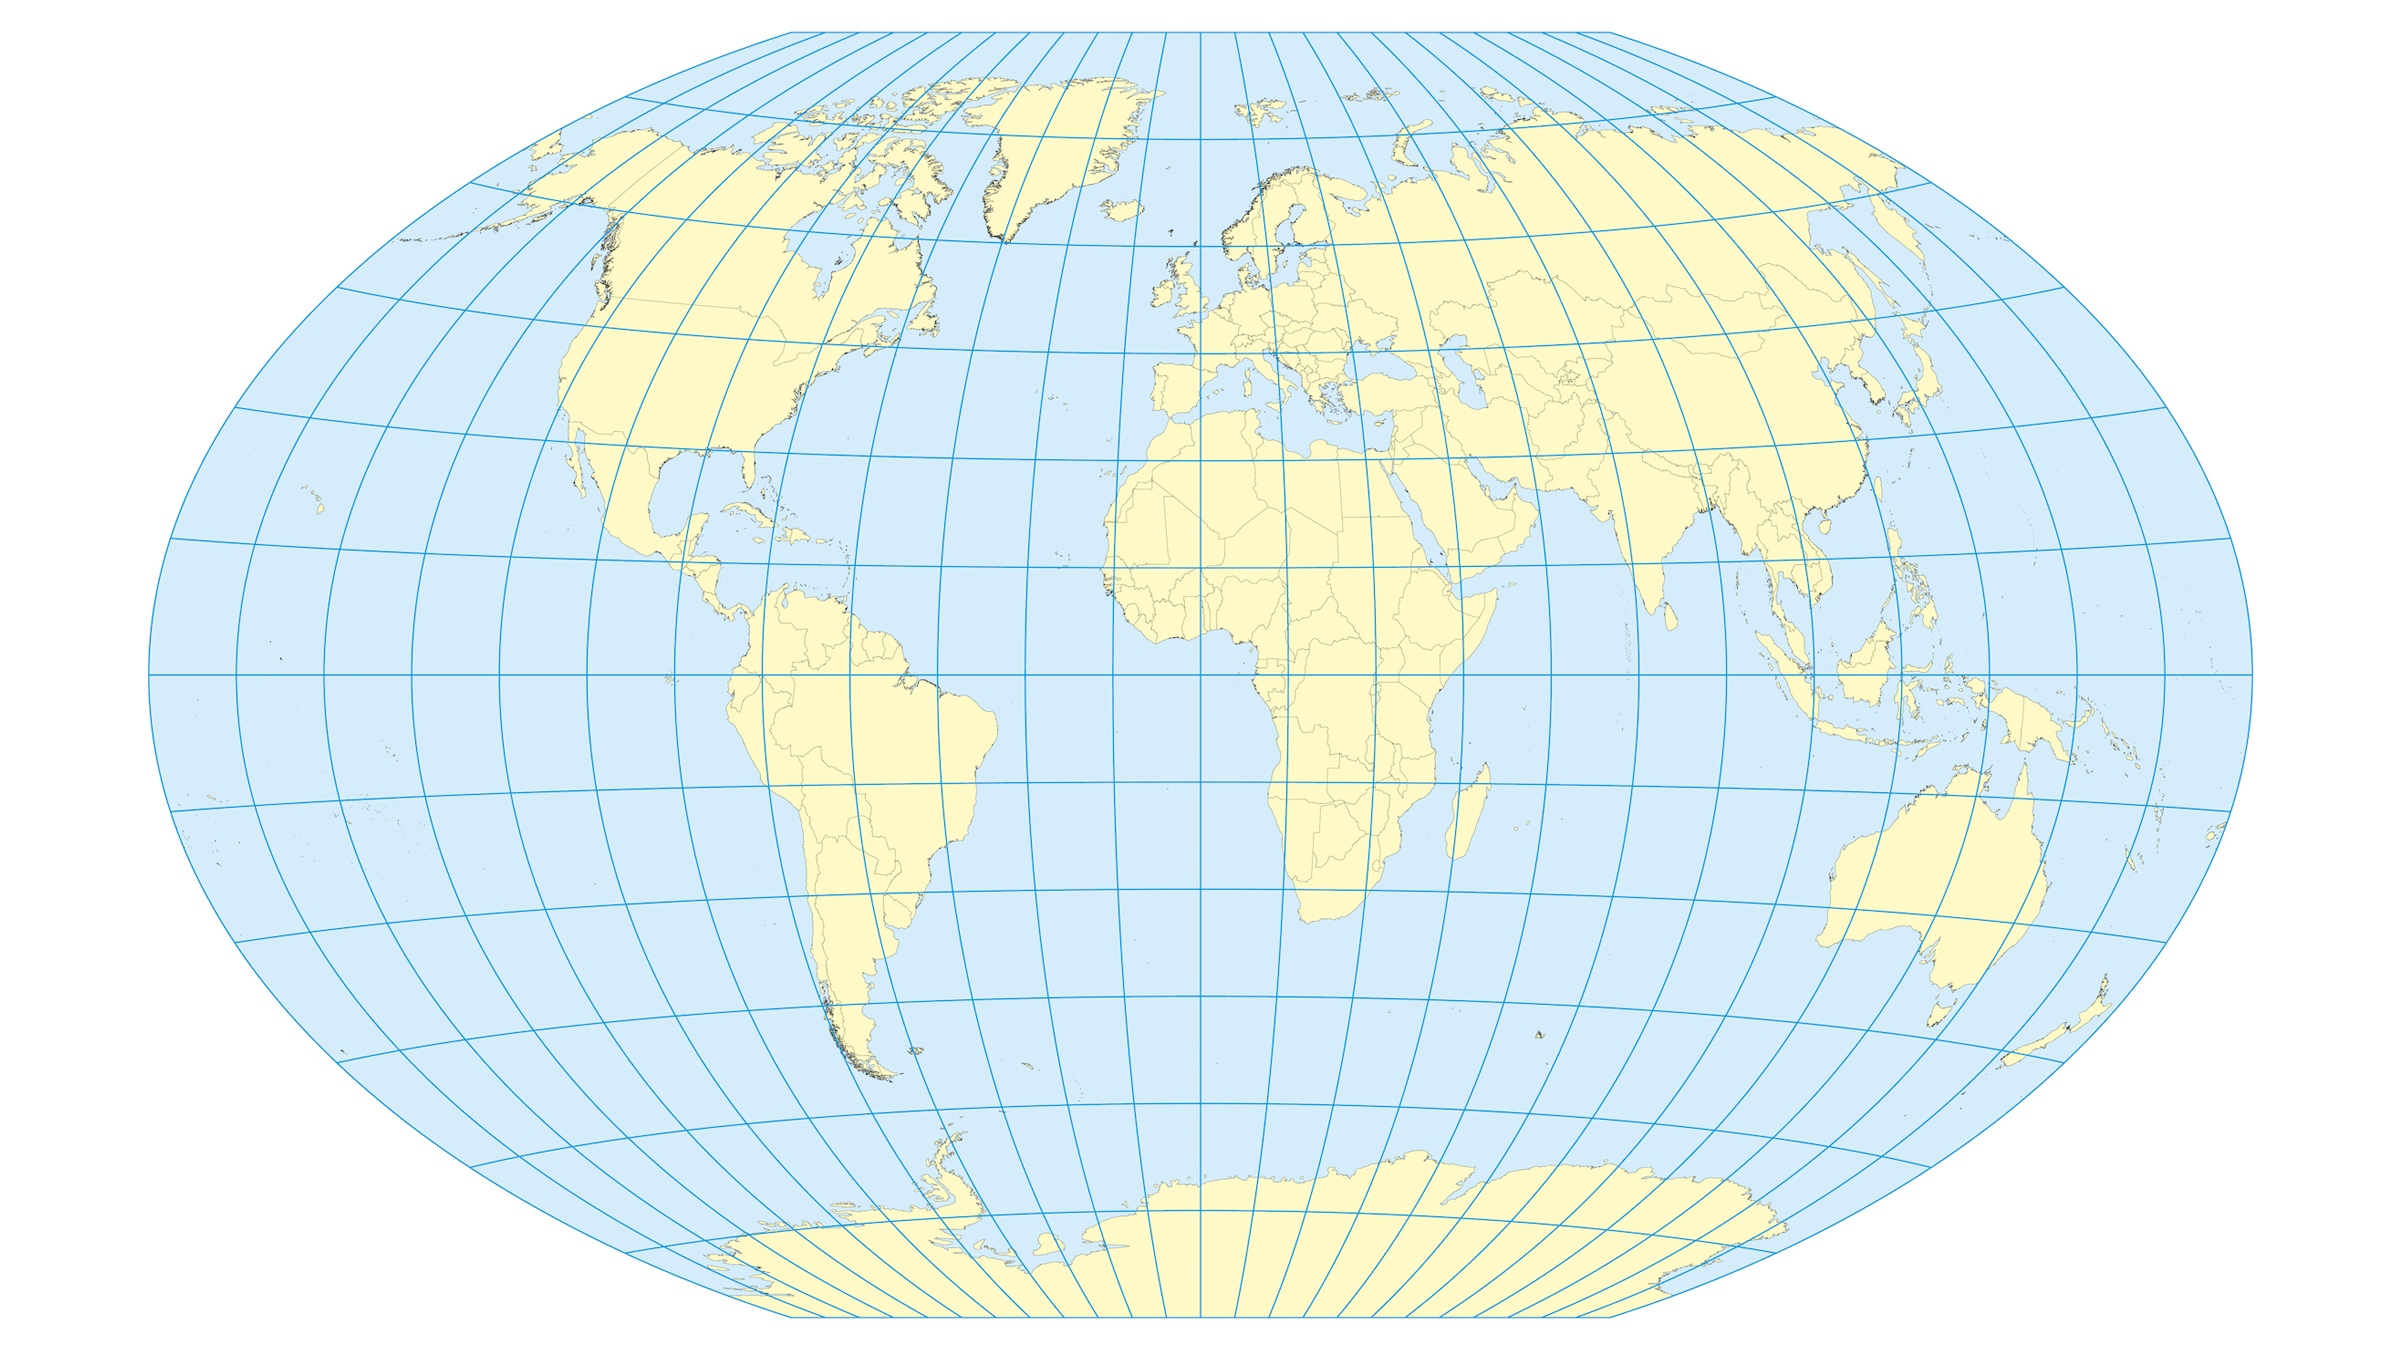 The Winkel Tripel projection world map was first designed in 1921.